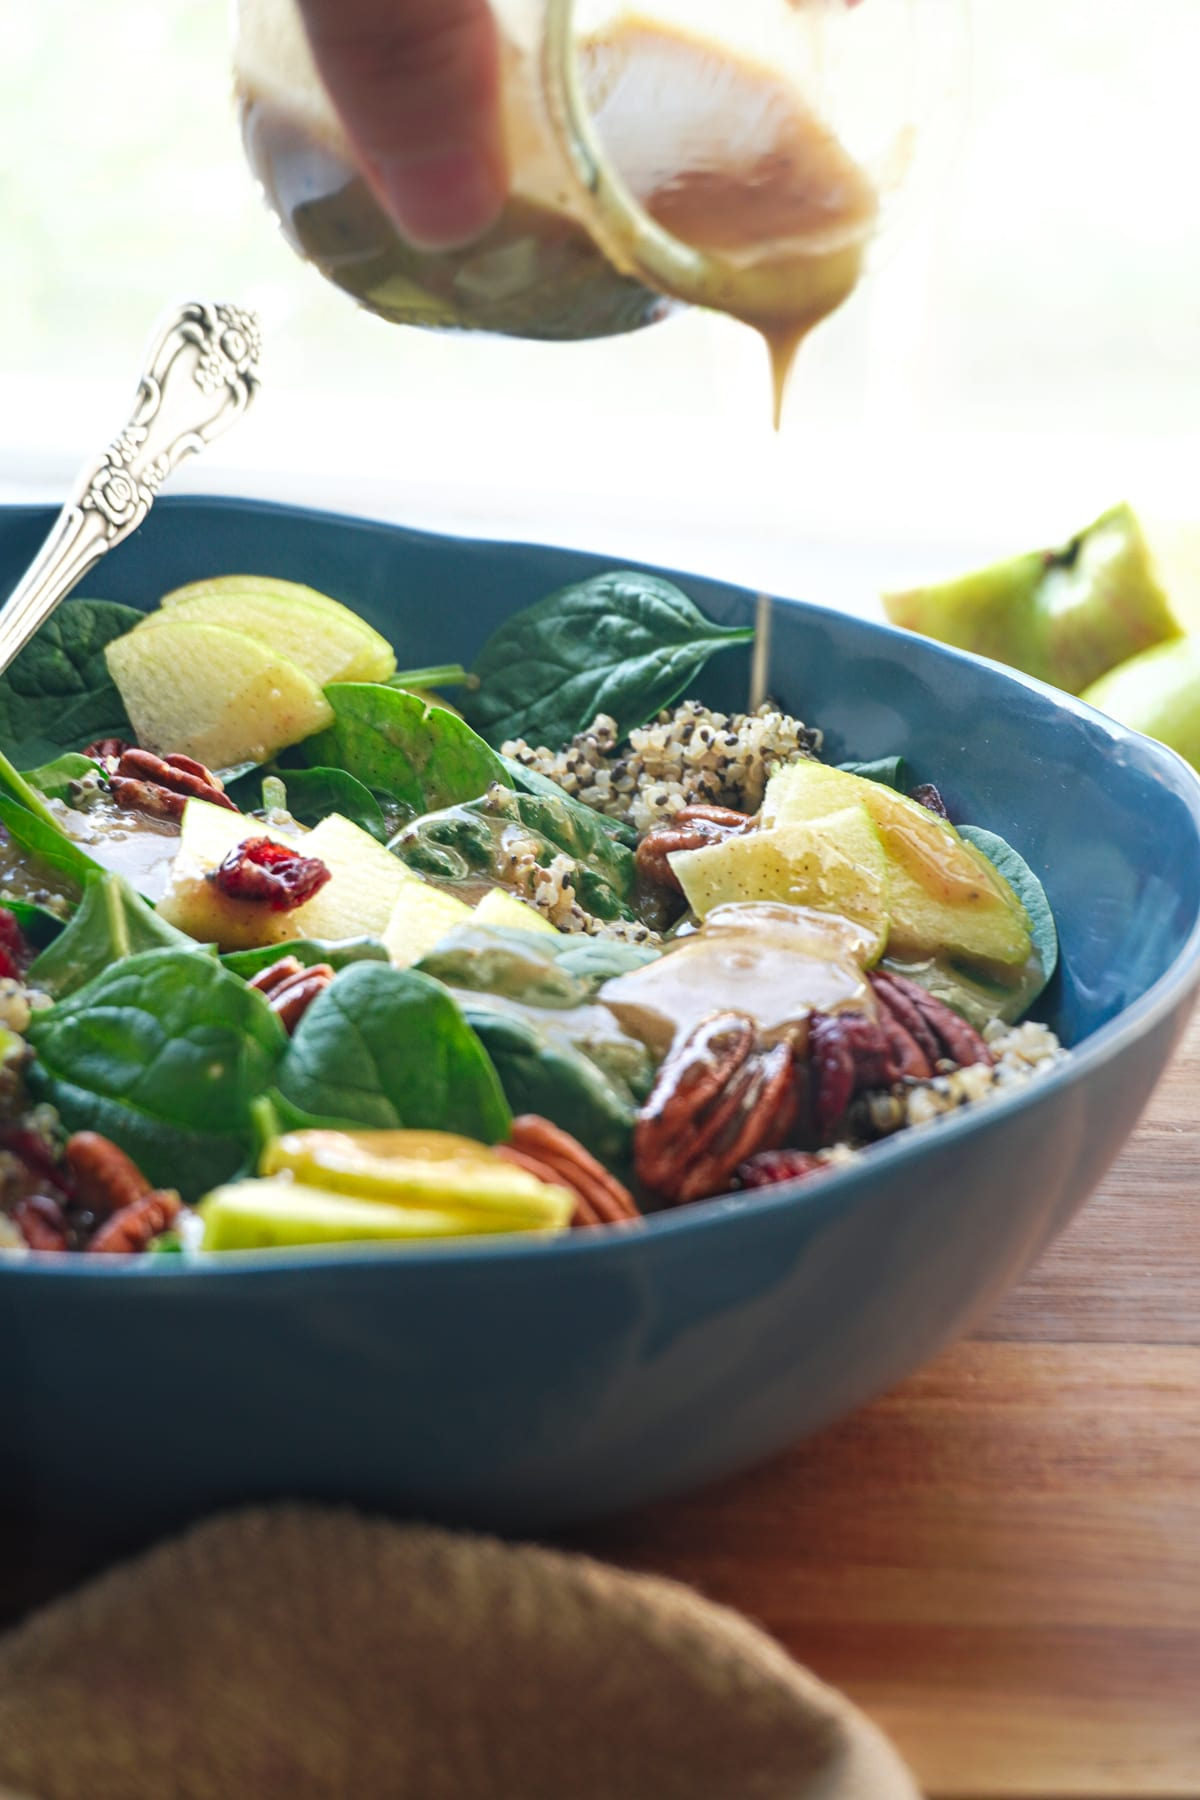 fall spinach salad recipes with apples and pecans.